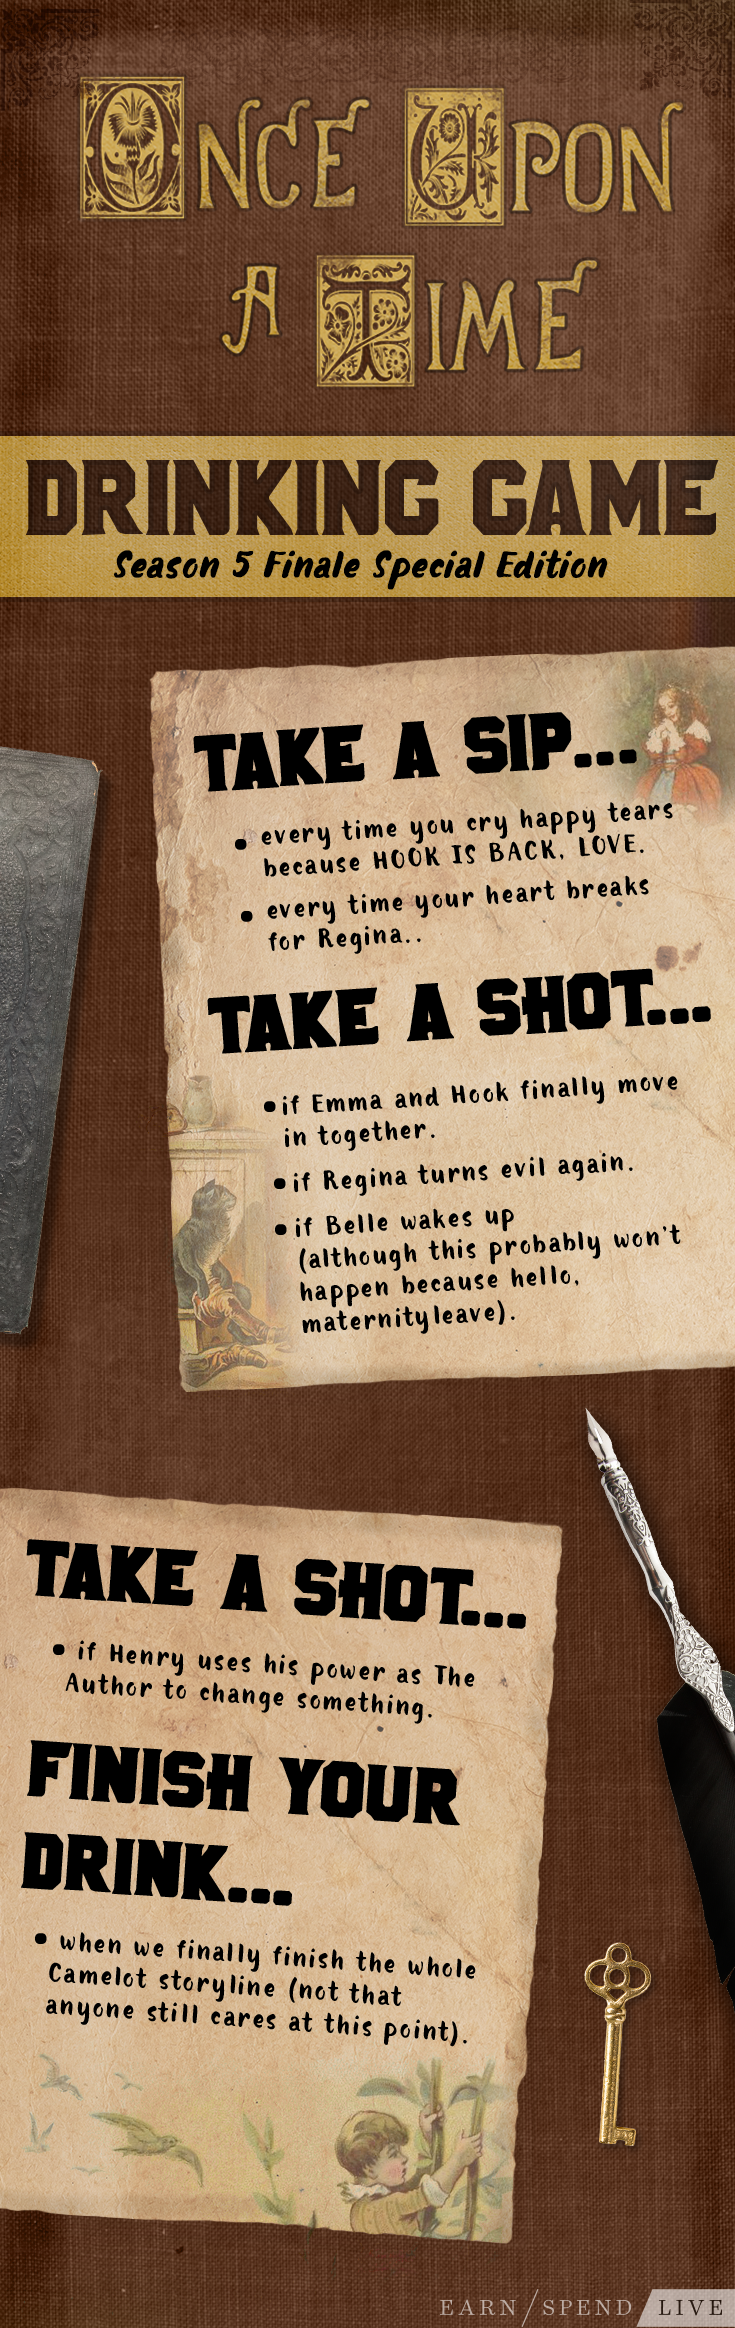 Once Upon A Time In Hollywood (2019) Drinking Game - Drink ...